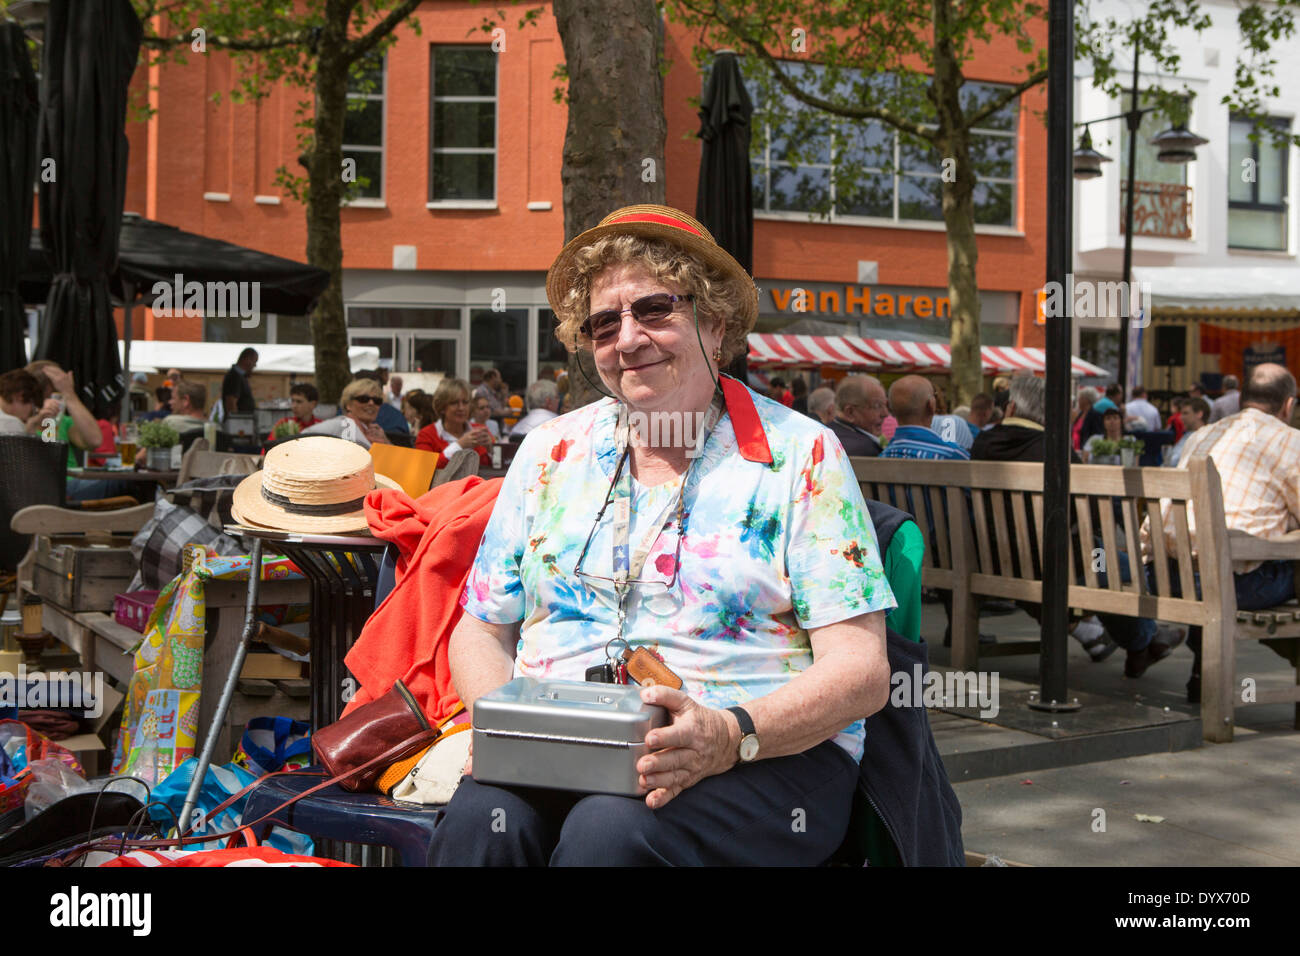 Woman taking care of the money at the free market of Helmond in the Netherlands at King's day. - Stock Image